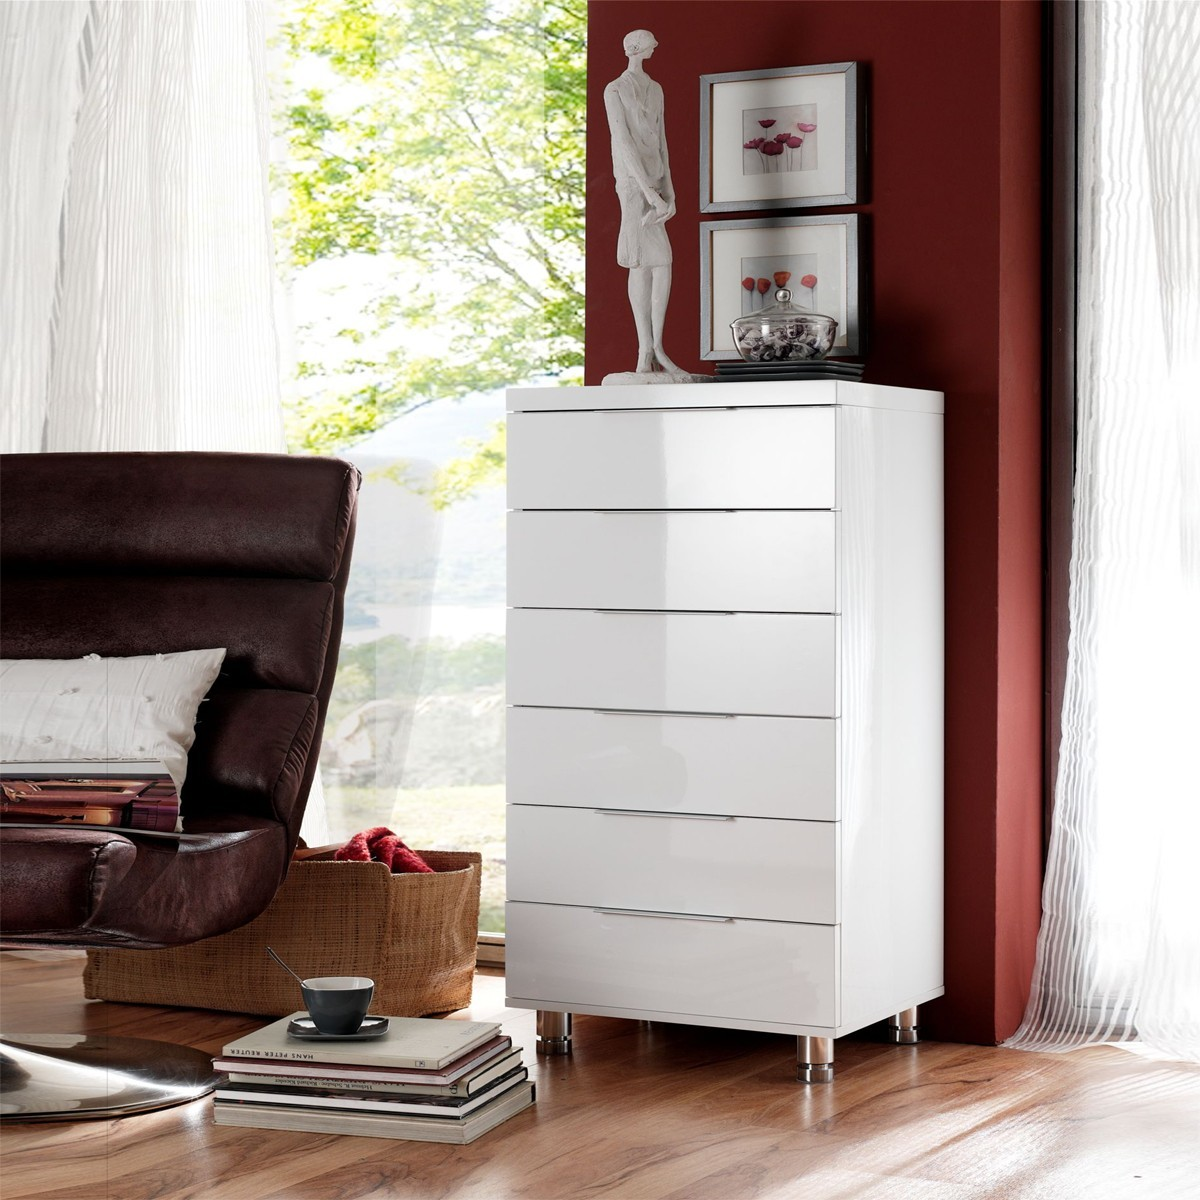 sideboard nussbaum wei hochglanz sideboard nussbaum wei hochglanz mailand weiss hgl x with. Black Bedroom Furniture Sets. Home Design Ideas